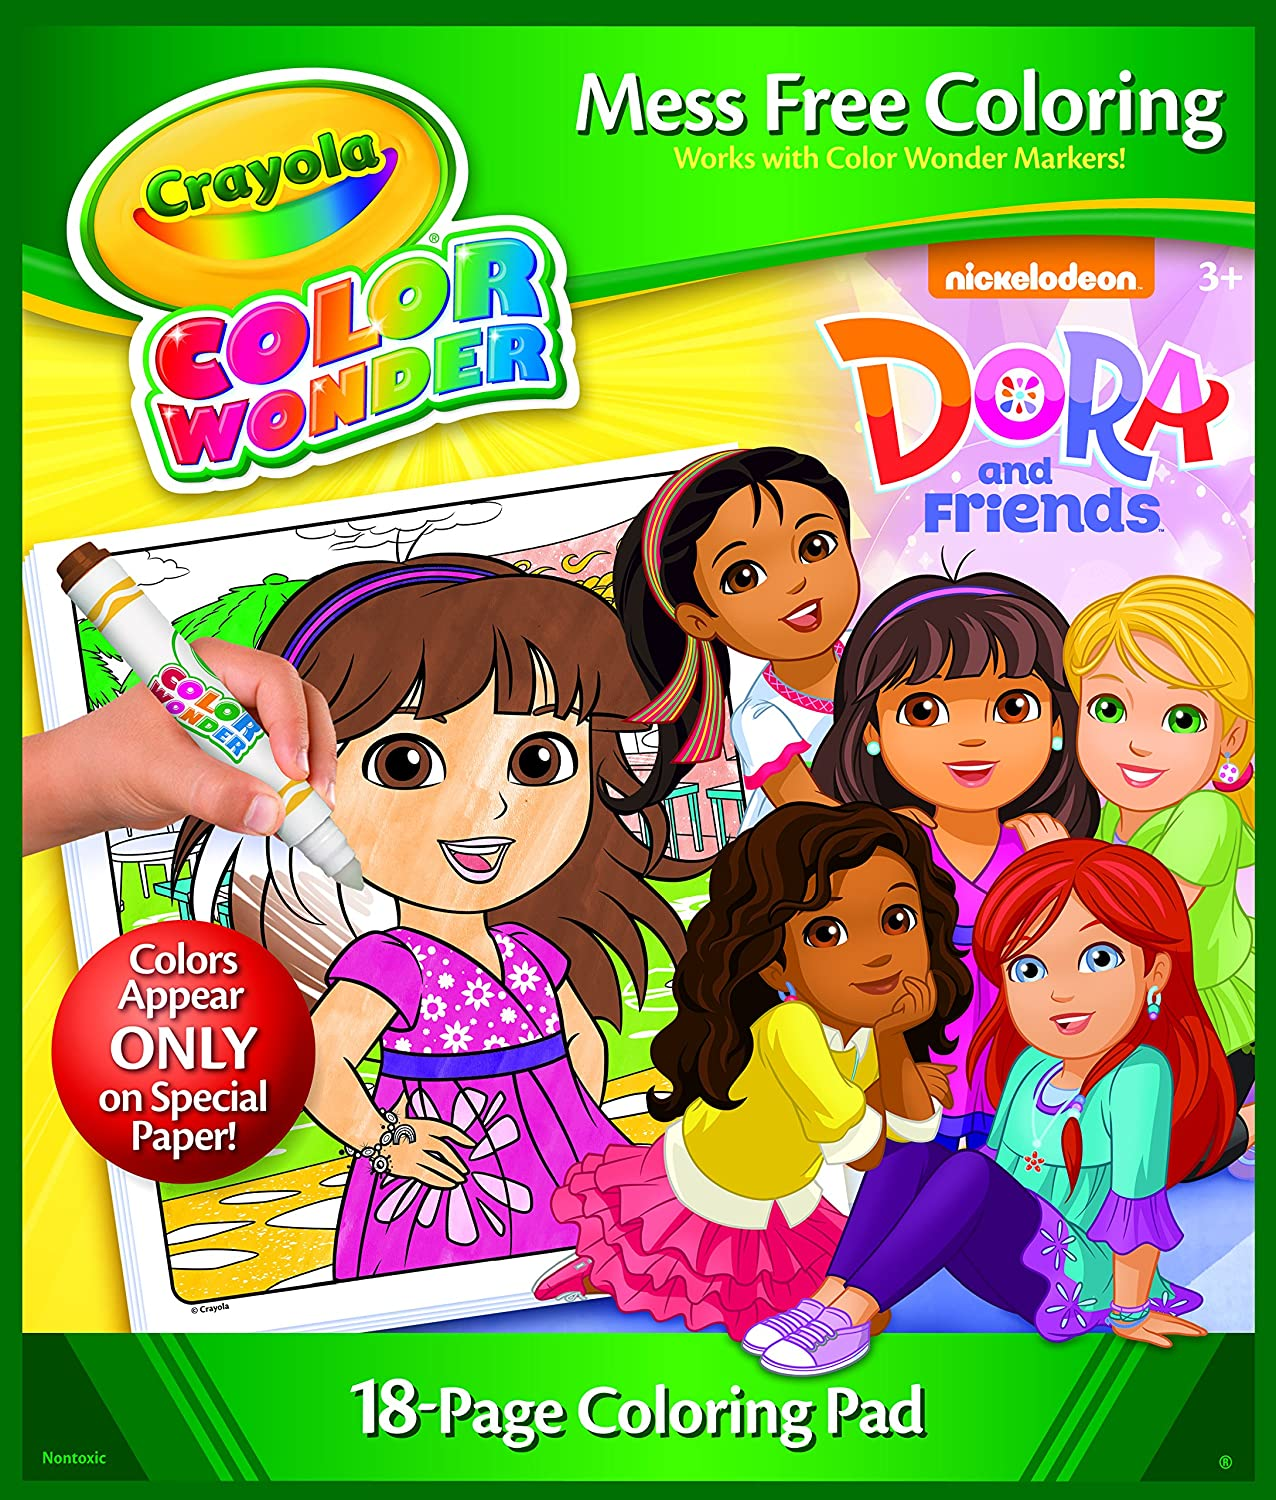 Amazon.com: Crayola Color Wonder Dora Coloring Pad: Toys & Games